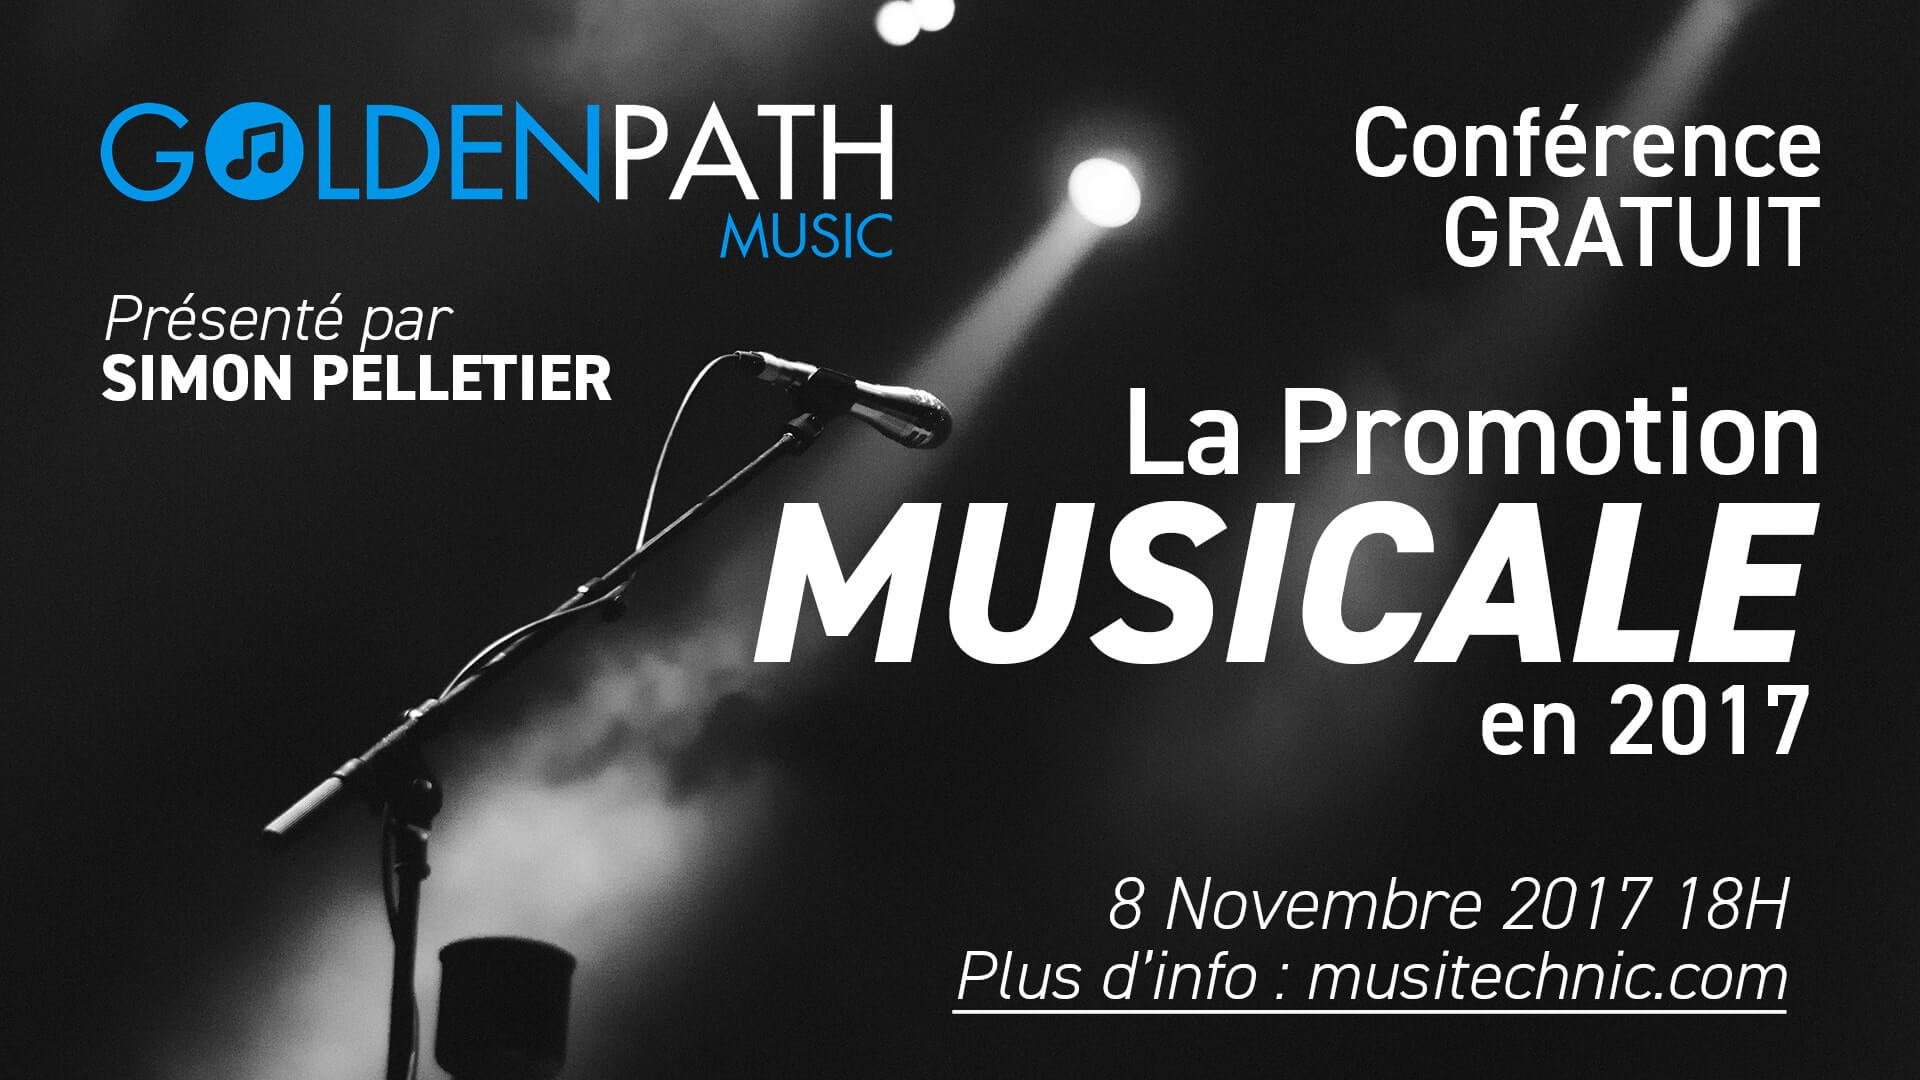 La Promotion Musicale en 2017 avec Simon Pelletier de Golden Path Music